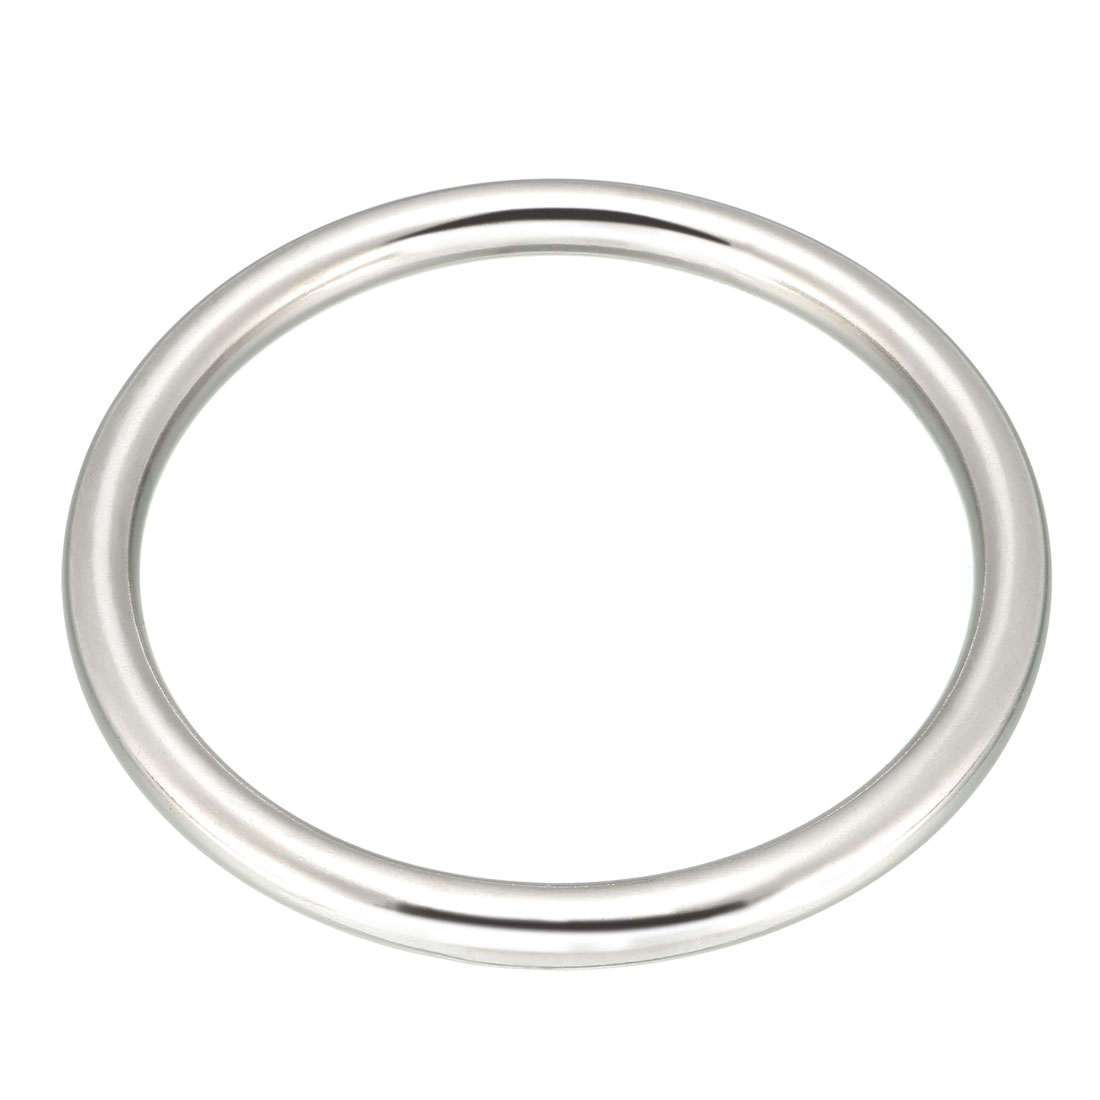 Uxcell New Hot 10pcs Multi-Purpose Metal O Ring Buckle Welded For Hardware Bags Ring Hand DIY Accessories 31mm X 25mm X 3mm